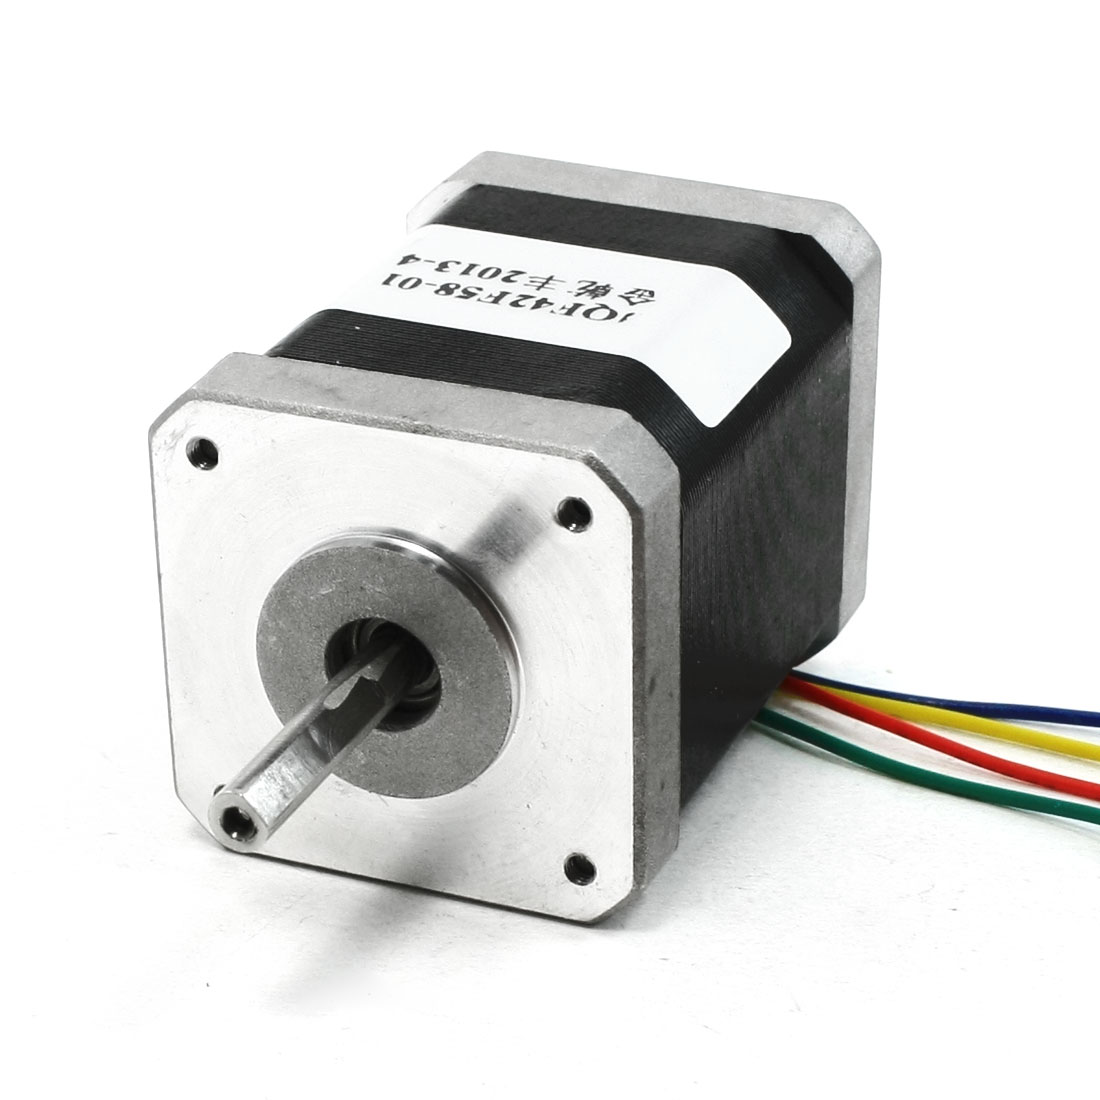 1000RPM 1.7A 4.5kg.cm Torque 4 Wire 5mm Shaft Stepping Stepper Motor